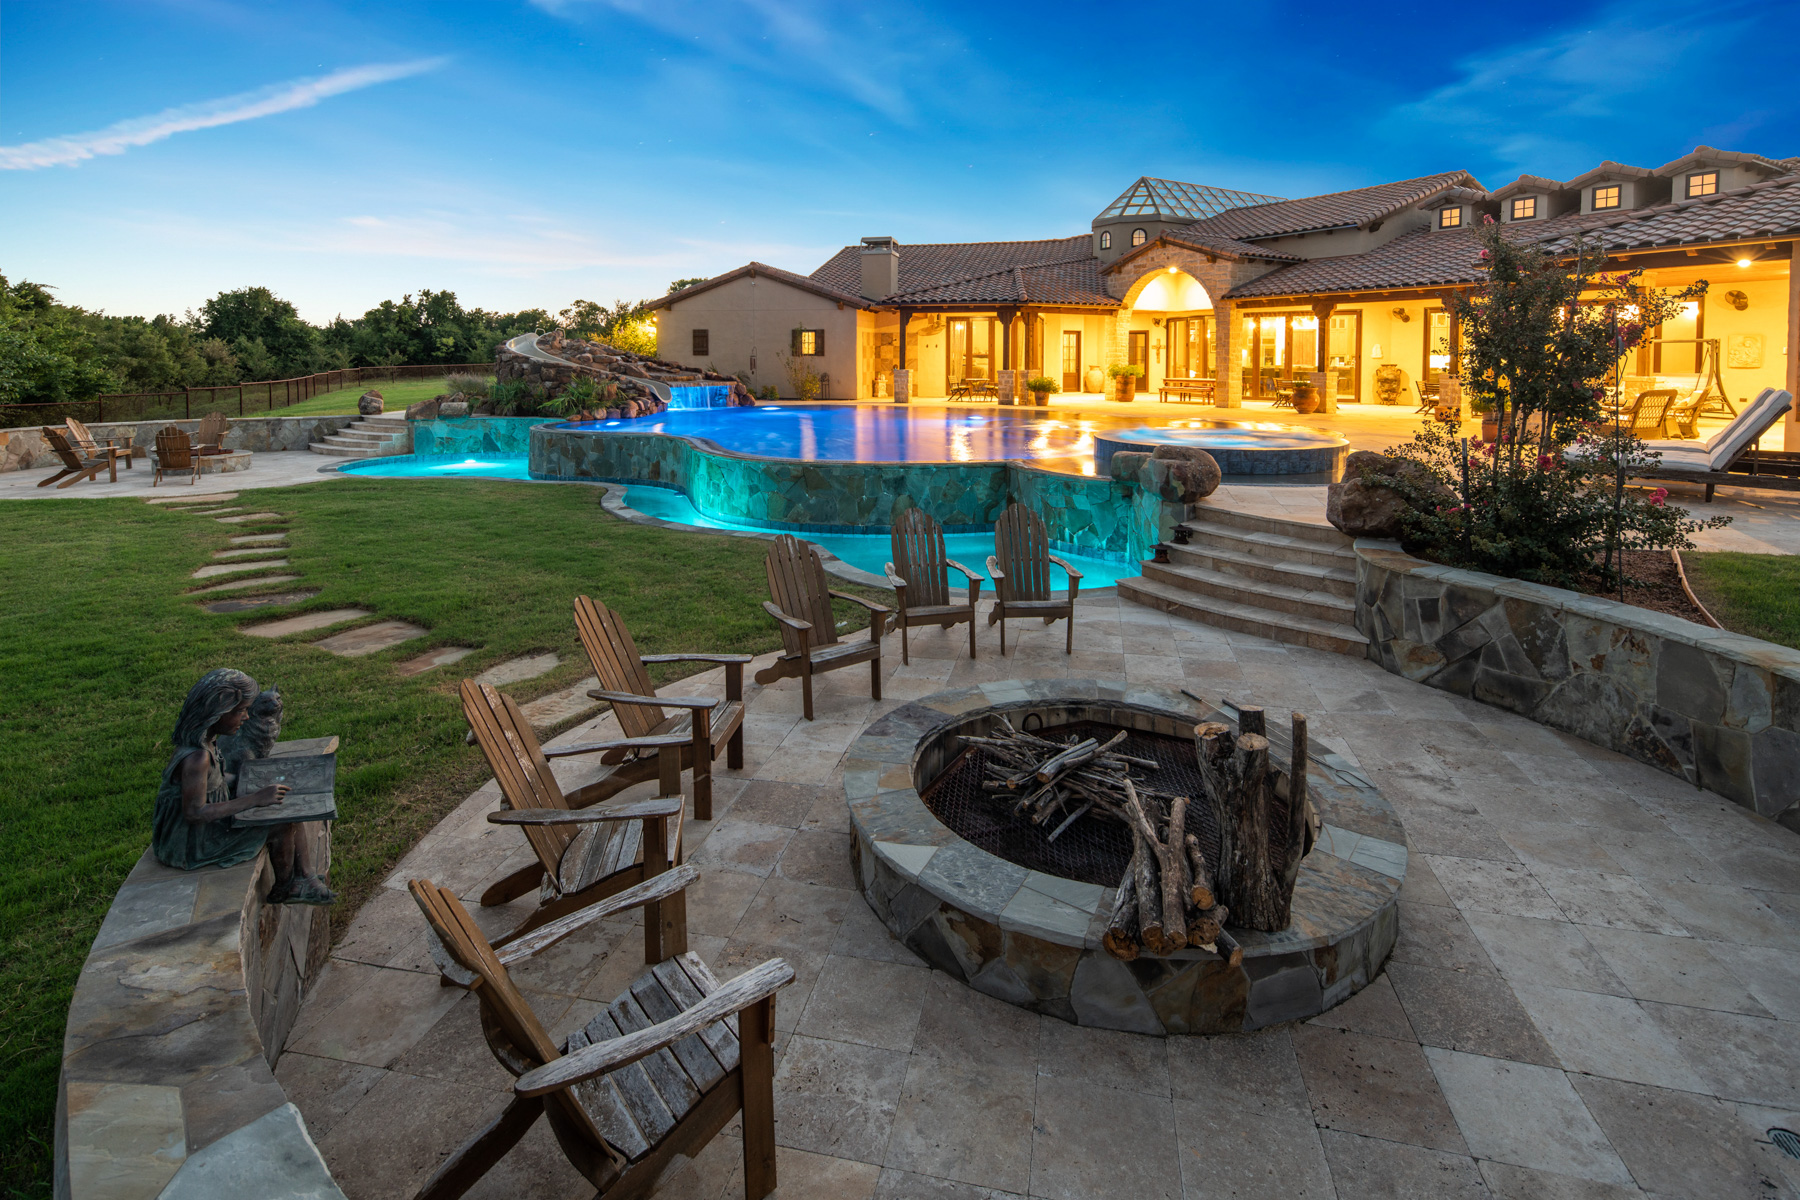 Single Family Homes for Sale at Mediterranean Masterpiece 8303 County Road 167 McKinney, Texas 75071 United States